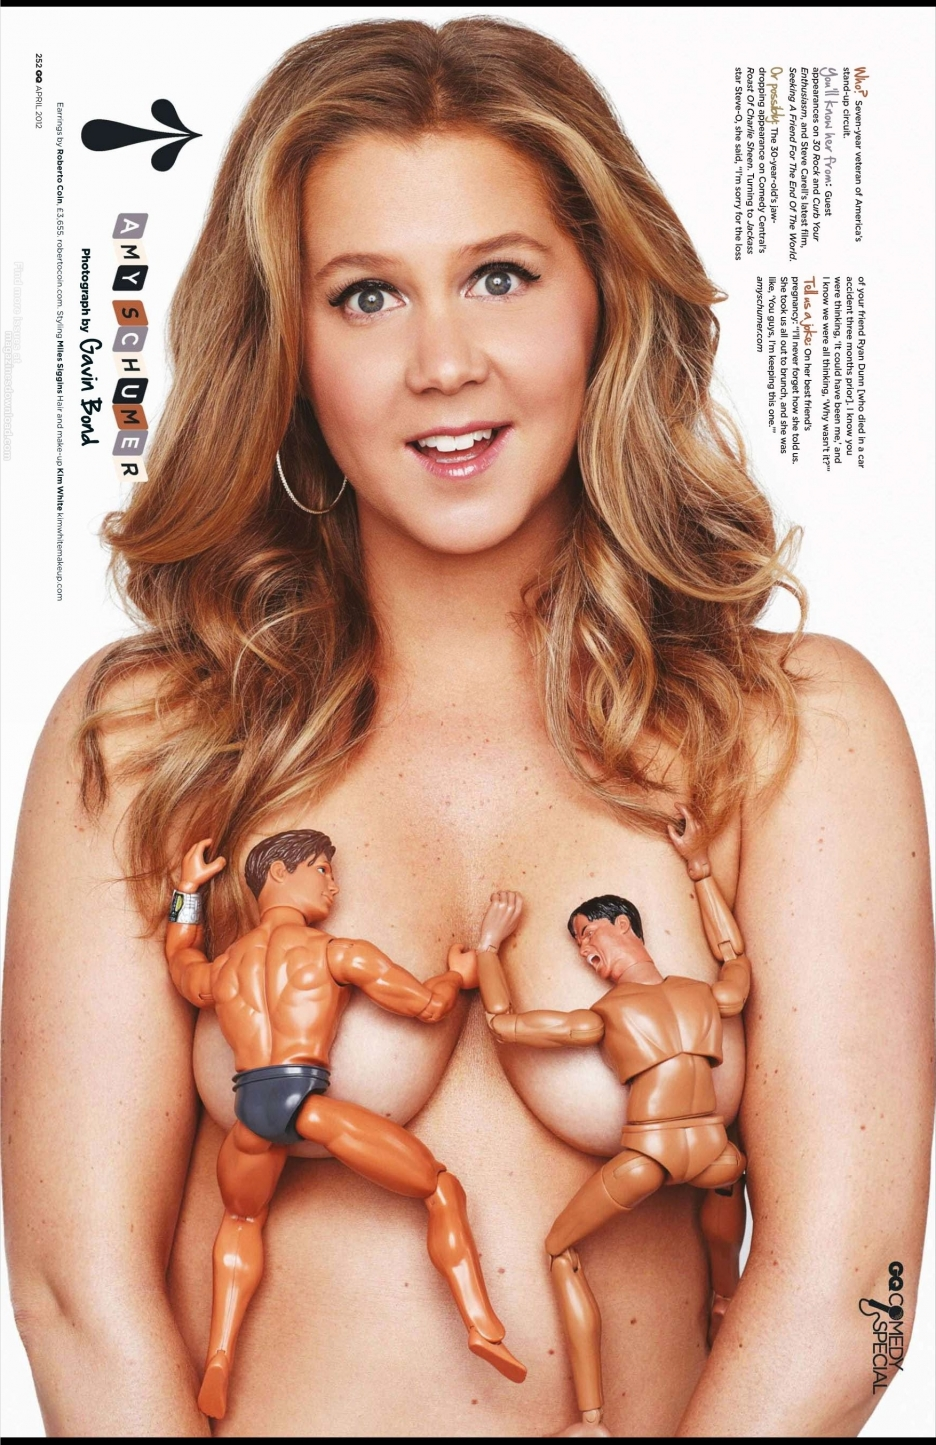 Amy Schumer topless